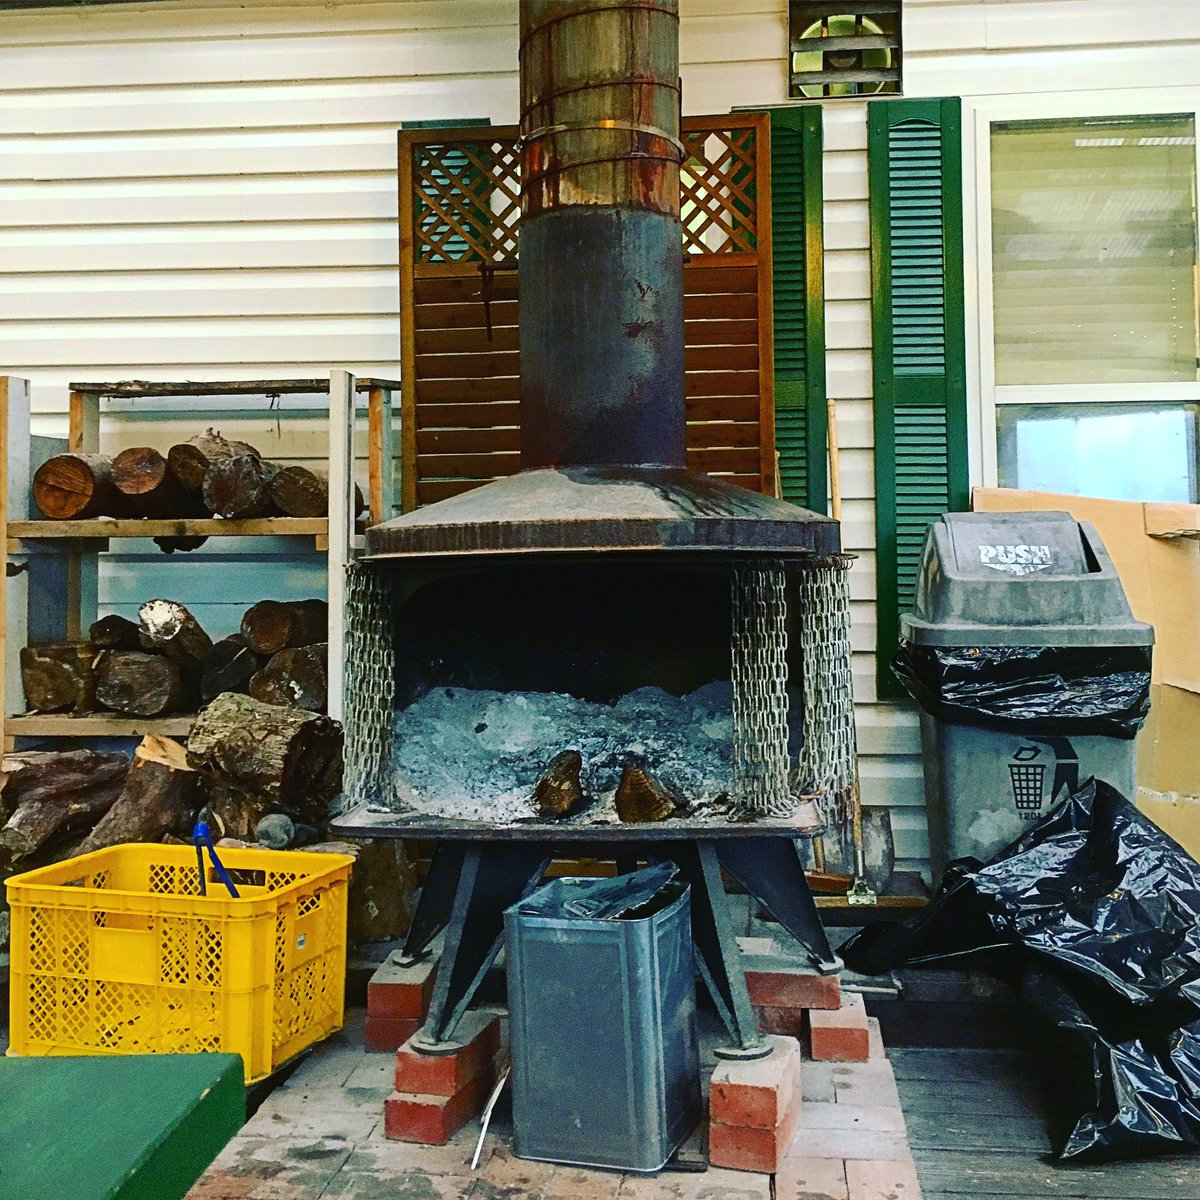 Big wood stove.  It can be used for incinerators. http://daddysbakery.jp/   #dj #housemusic #nudisco #disco #lifestyle #wine #cigar #betta #graphicdesign #djbar #宝塚 #camping #bicycle #art #interiordesignpic.twitter.com/5VCVAV2WPe